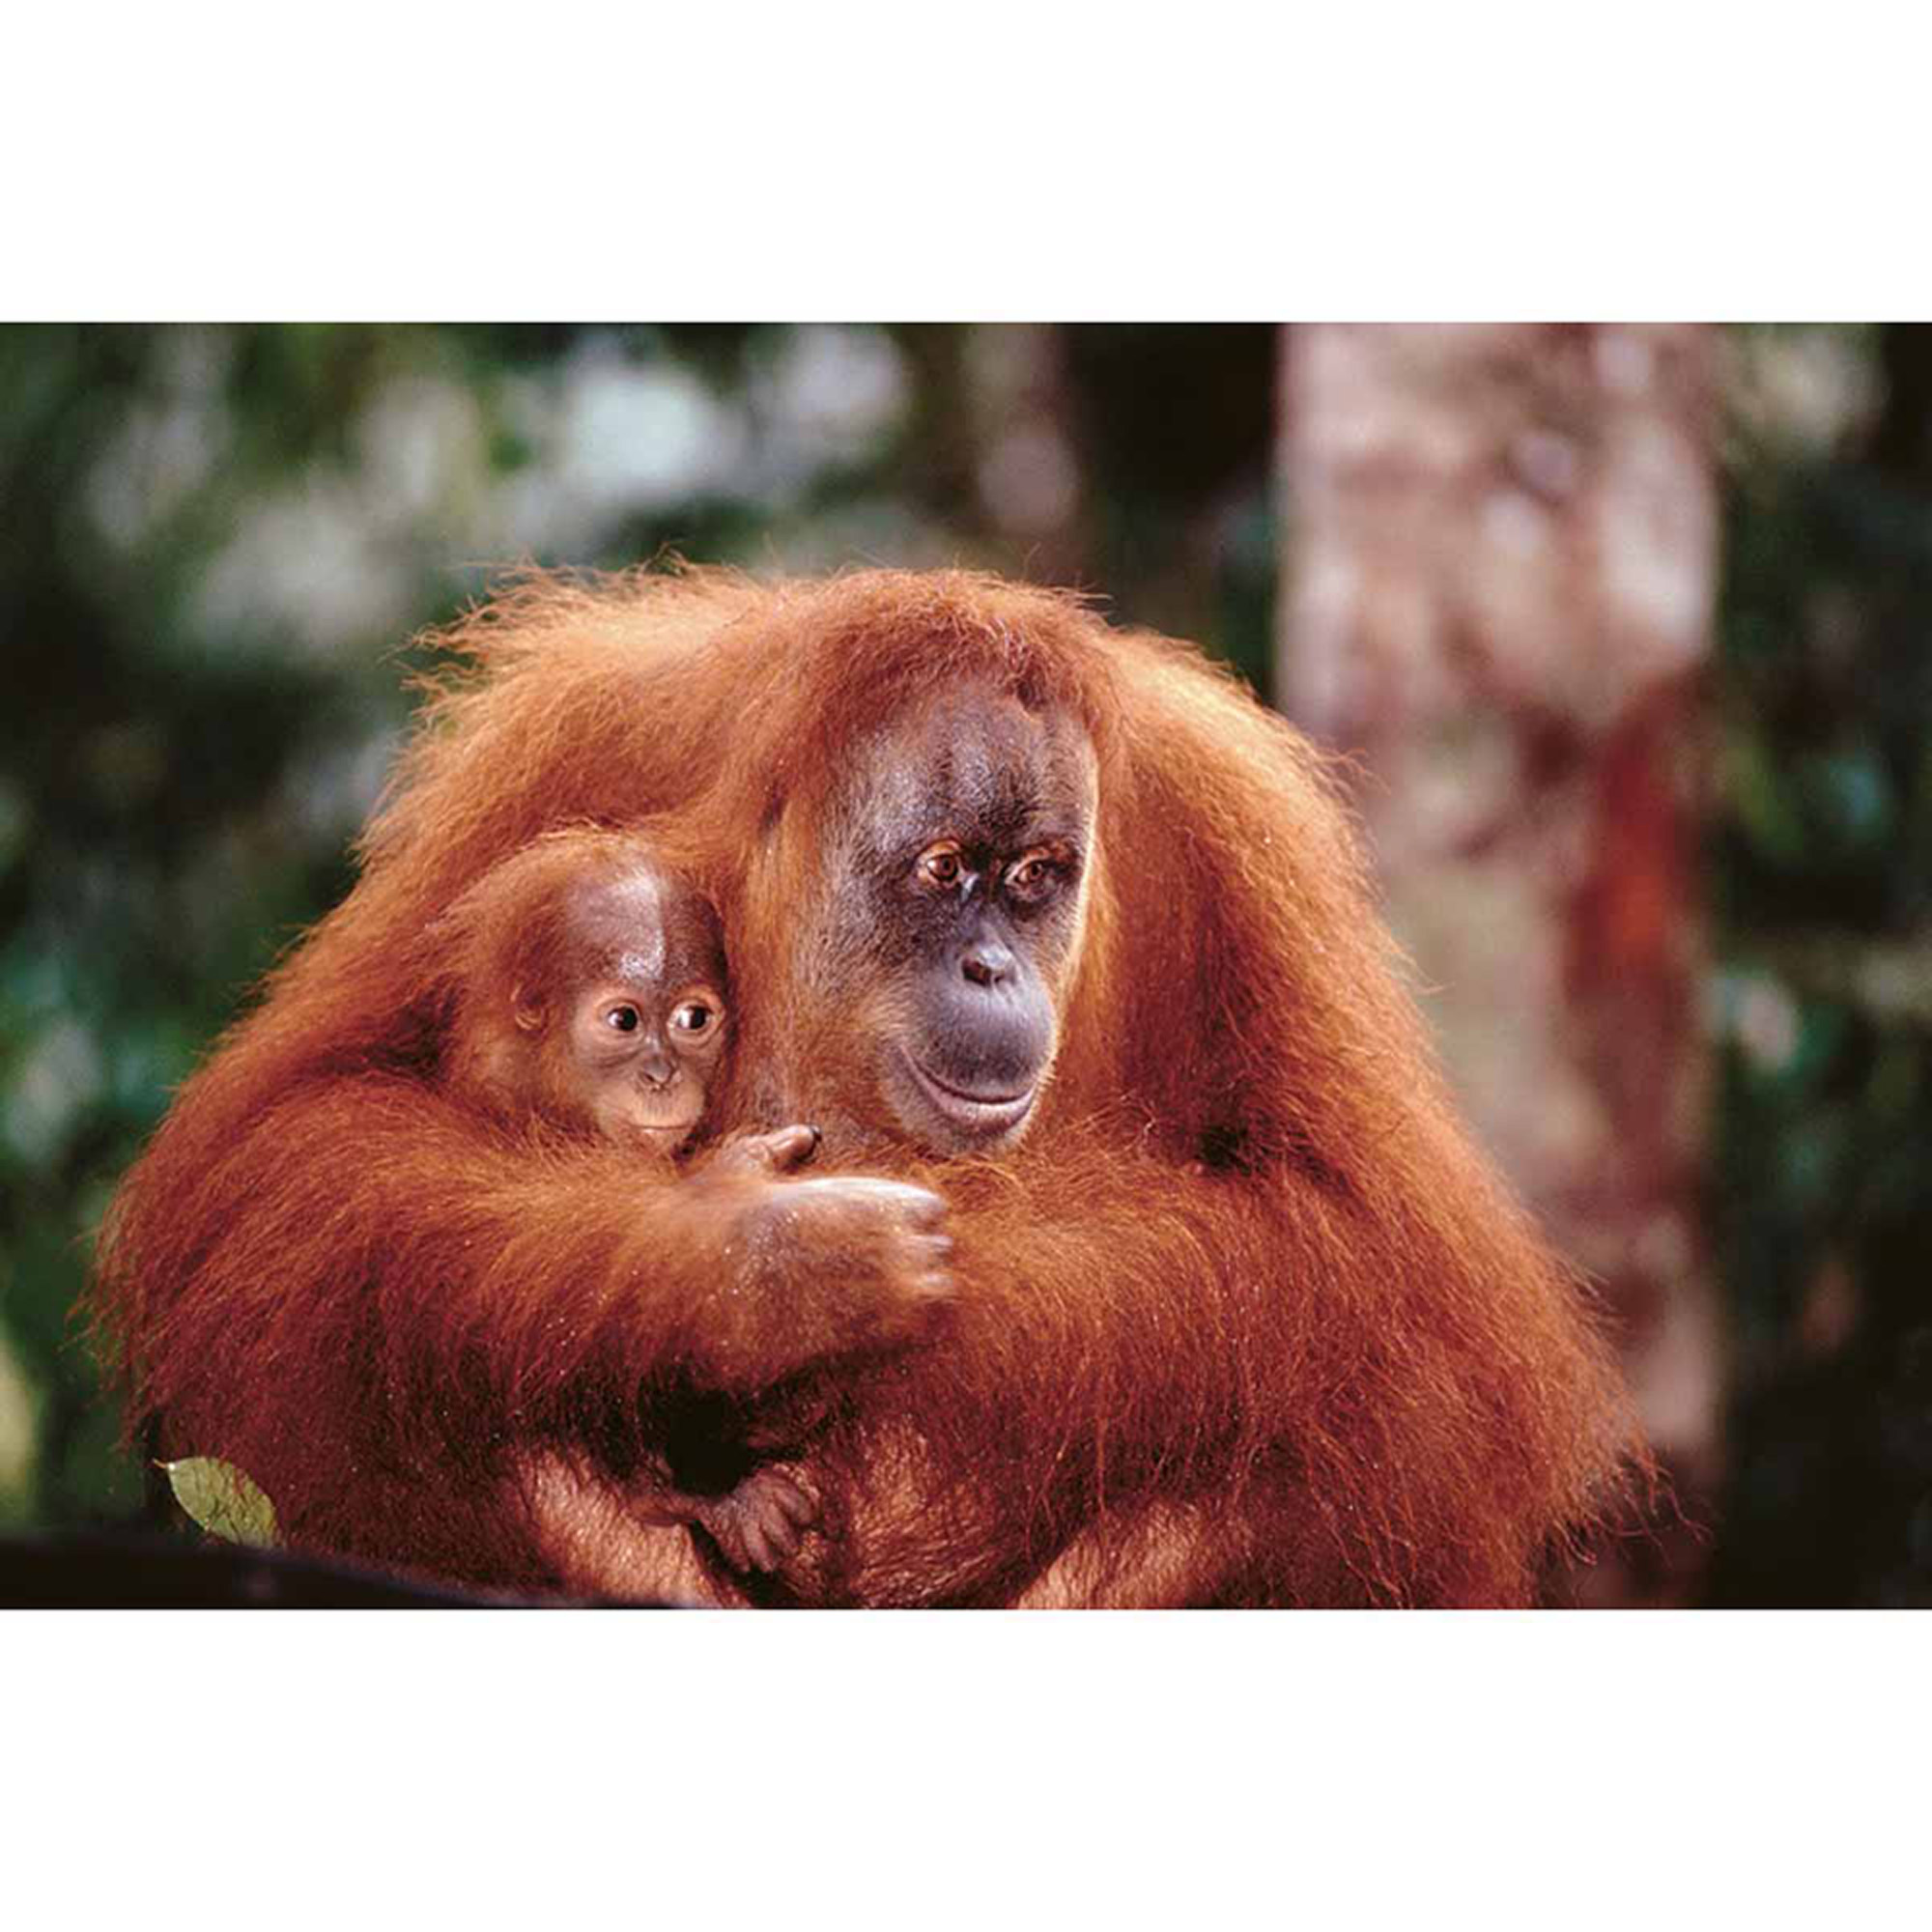 Orangutan And Baby Photography Art